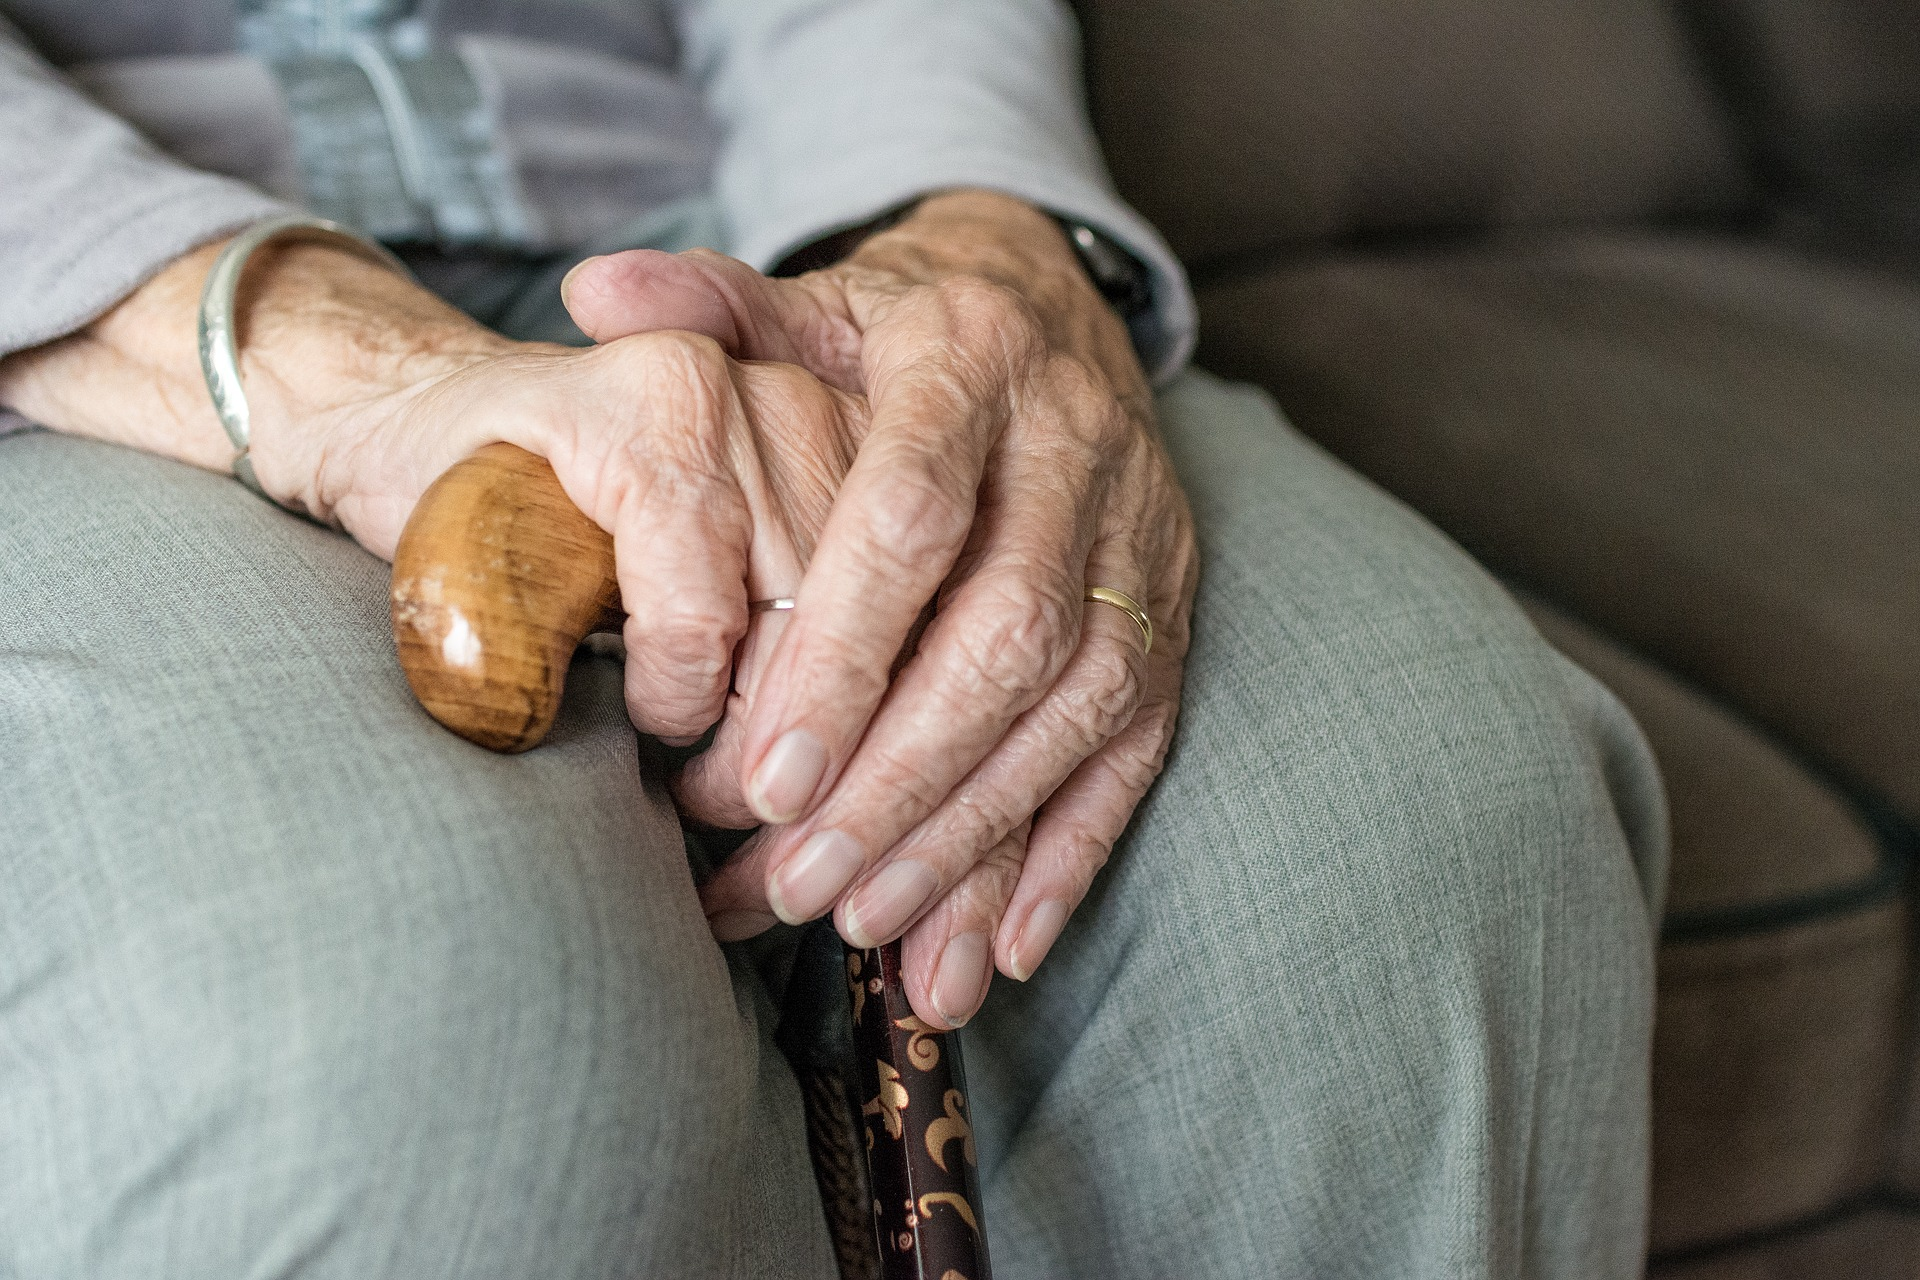 The hands of an older person, holding a walking stick